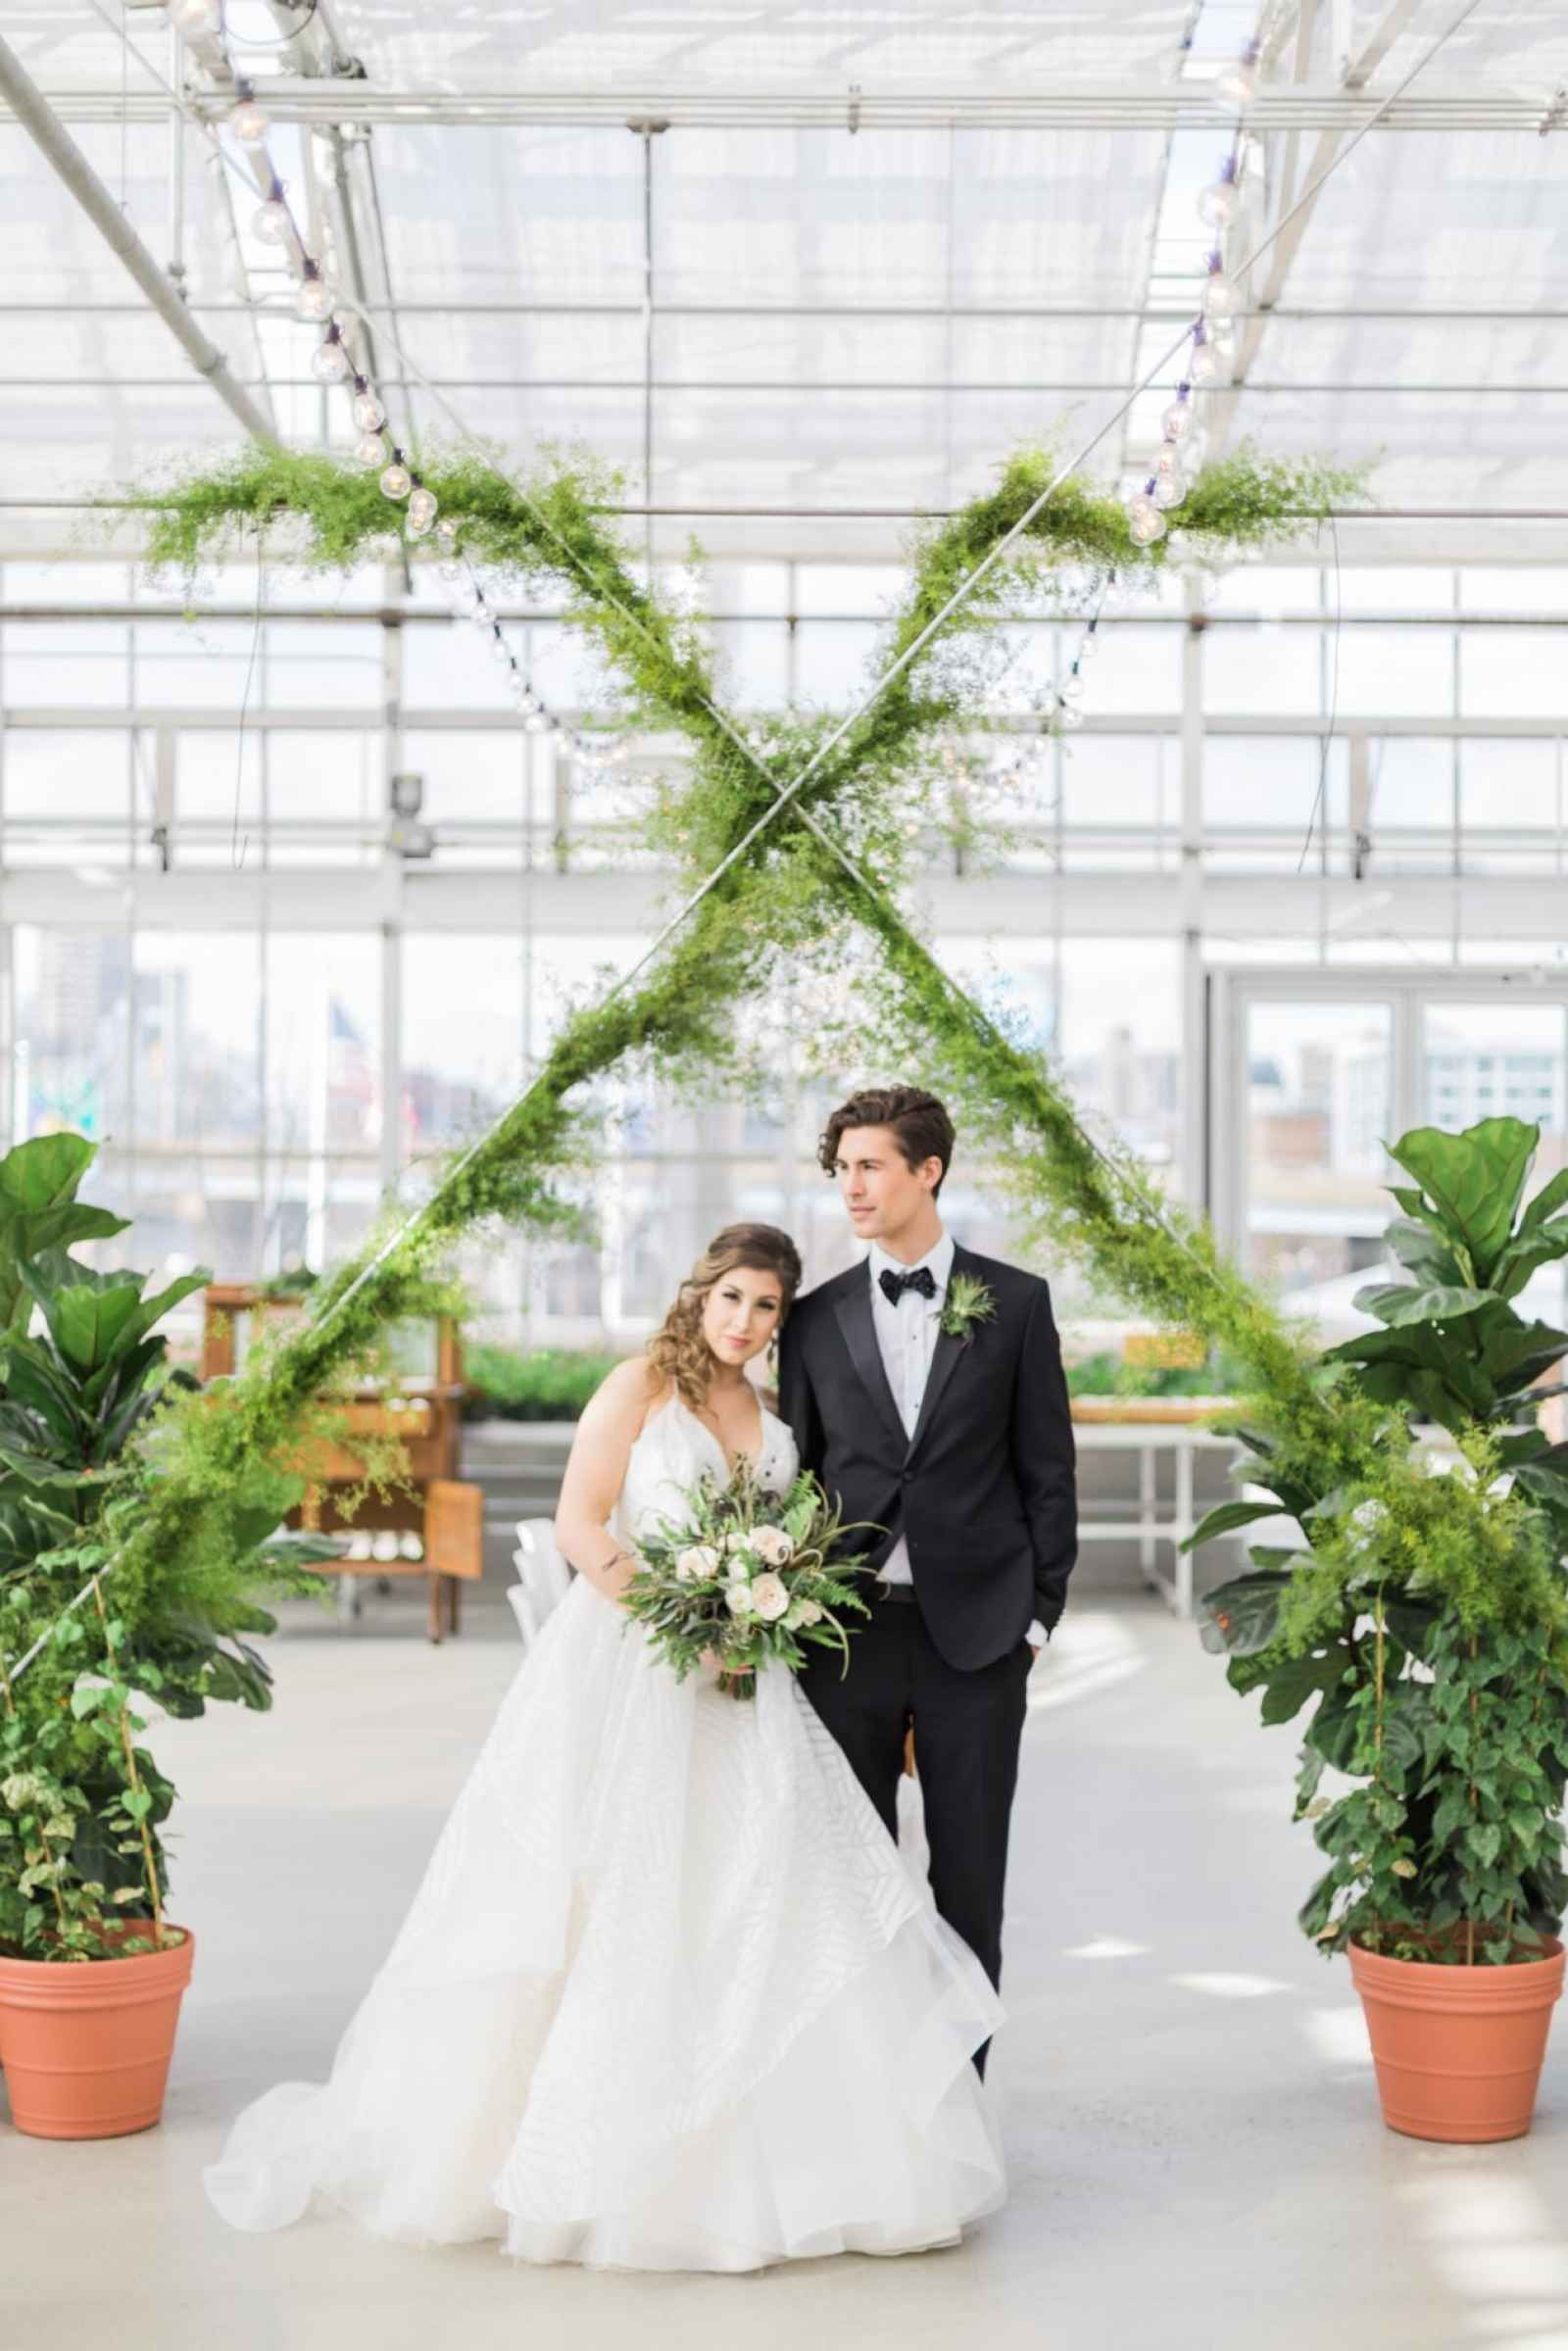 Grand Rapids Downtown Market, greenhouse wedding - Go Green or Go ...